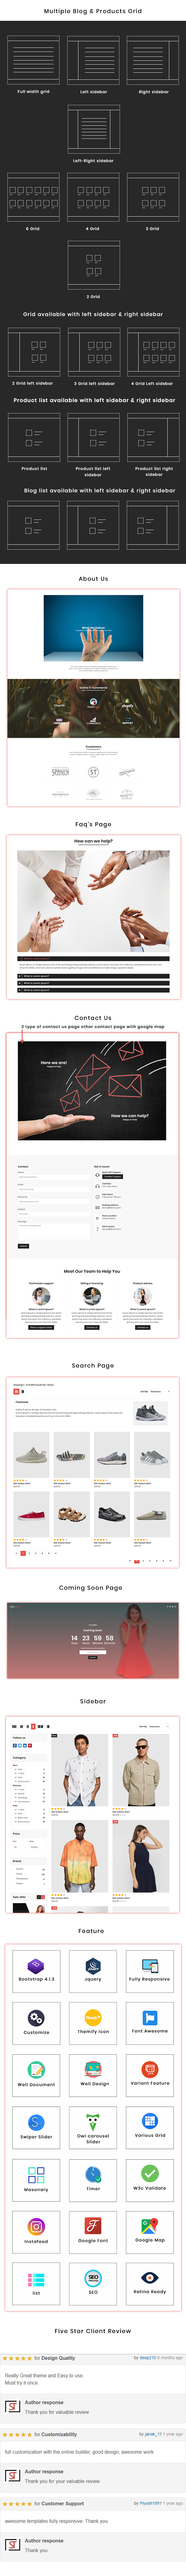 Libazz - The Responsive Bootstrap 4 Multipurpose eCommerce Template - 7